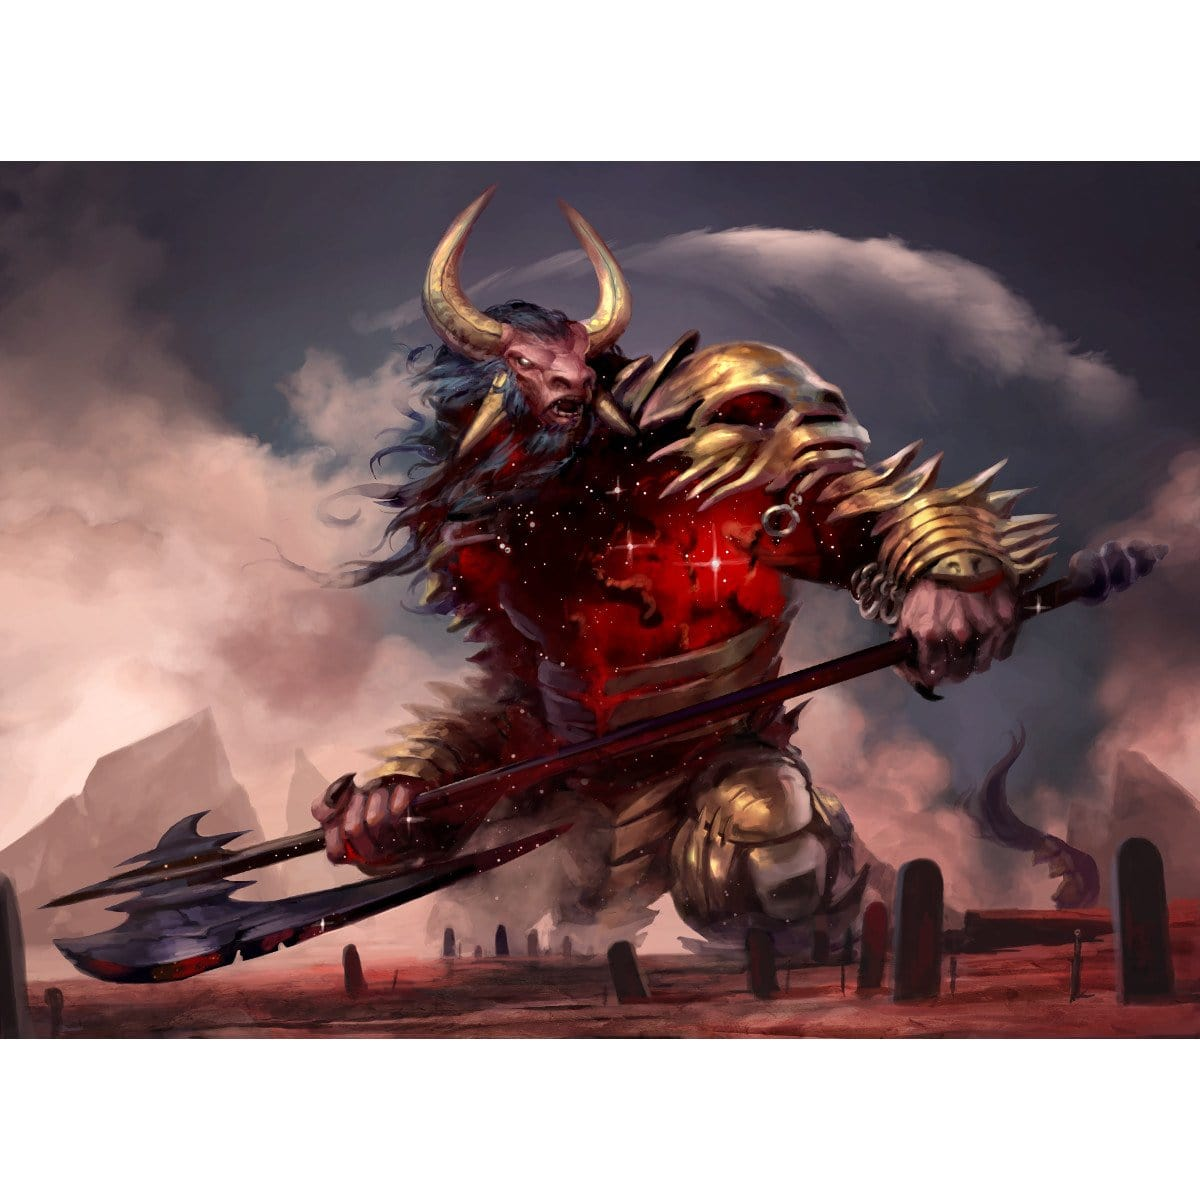 Mogis, God of Slaughter Print - Print - Original Magic Art - Accessories for Magic the Gathering and other card games